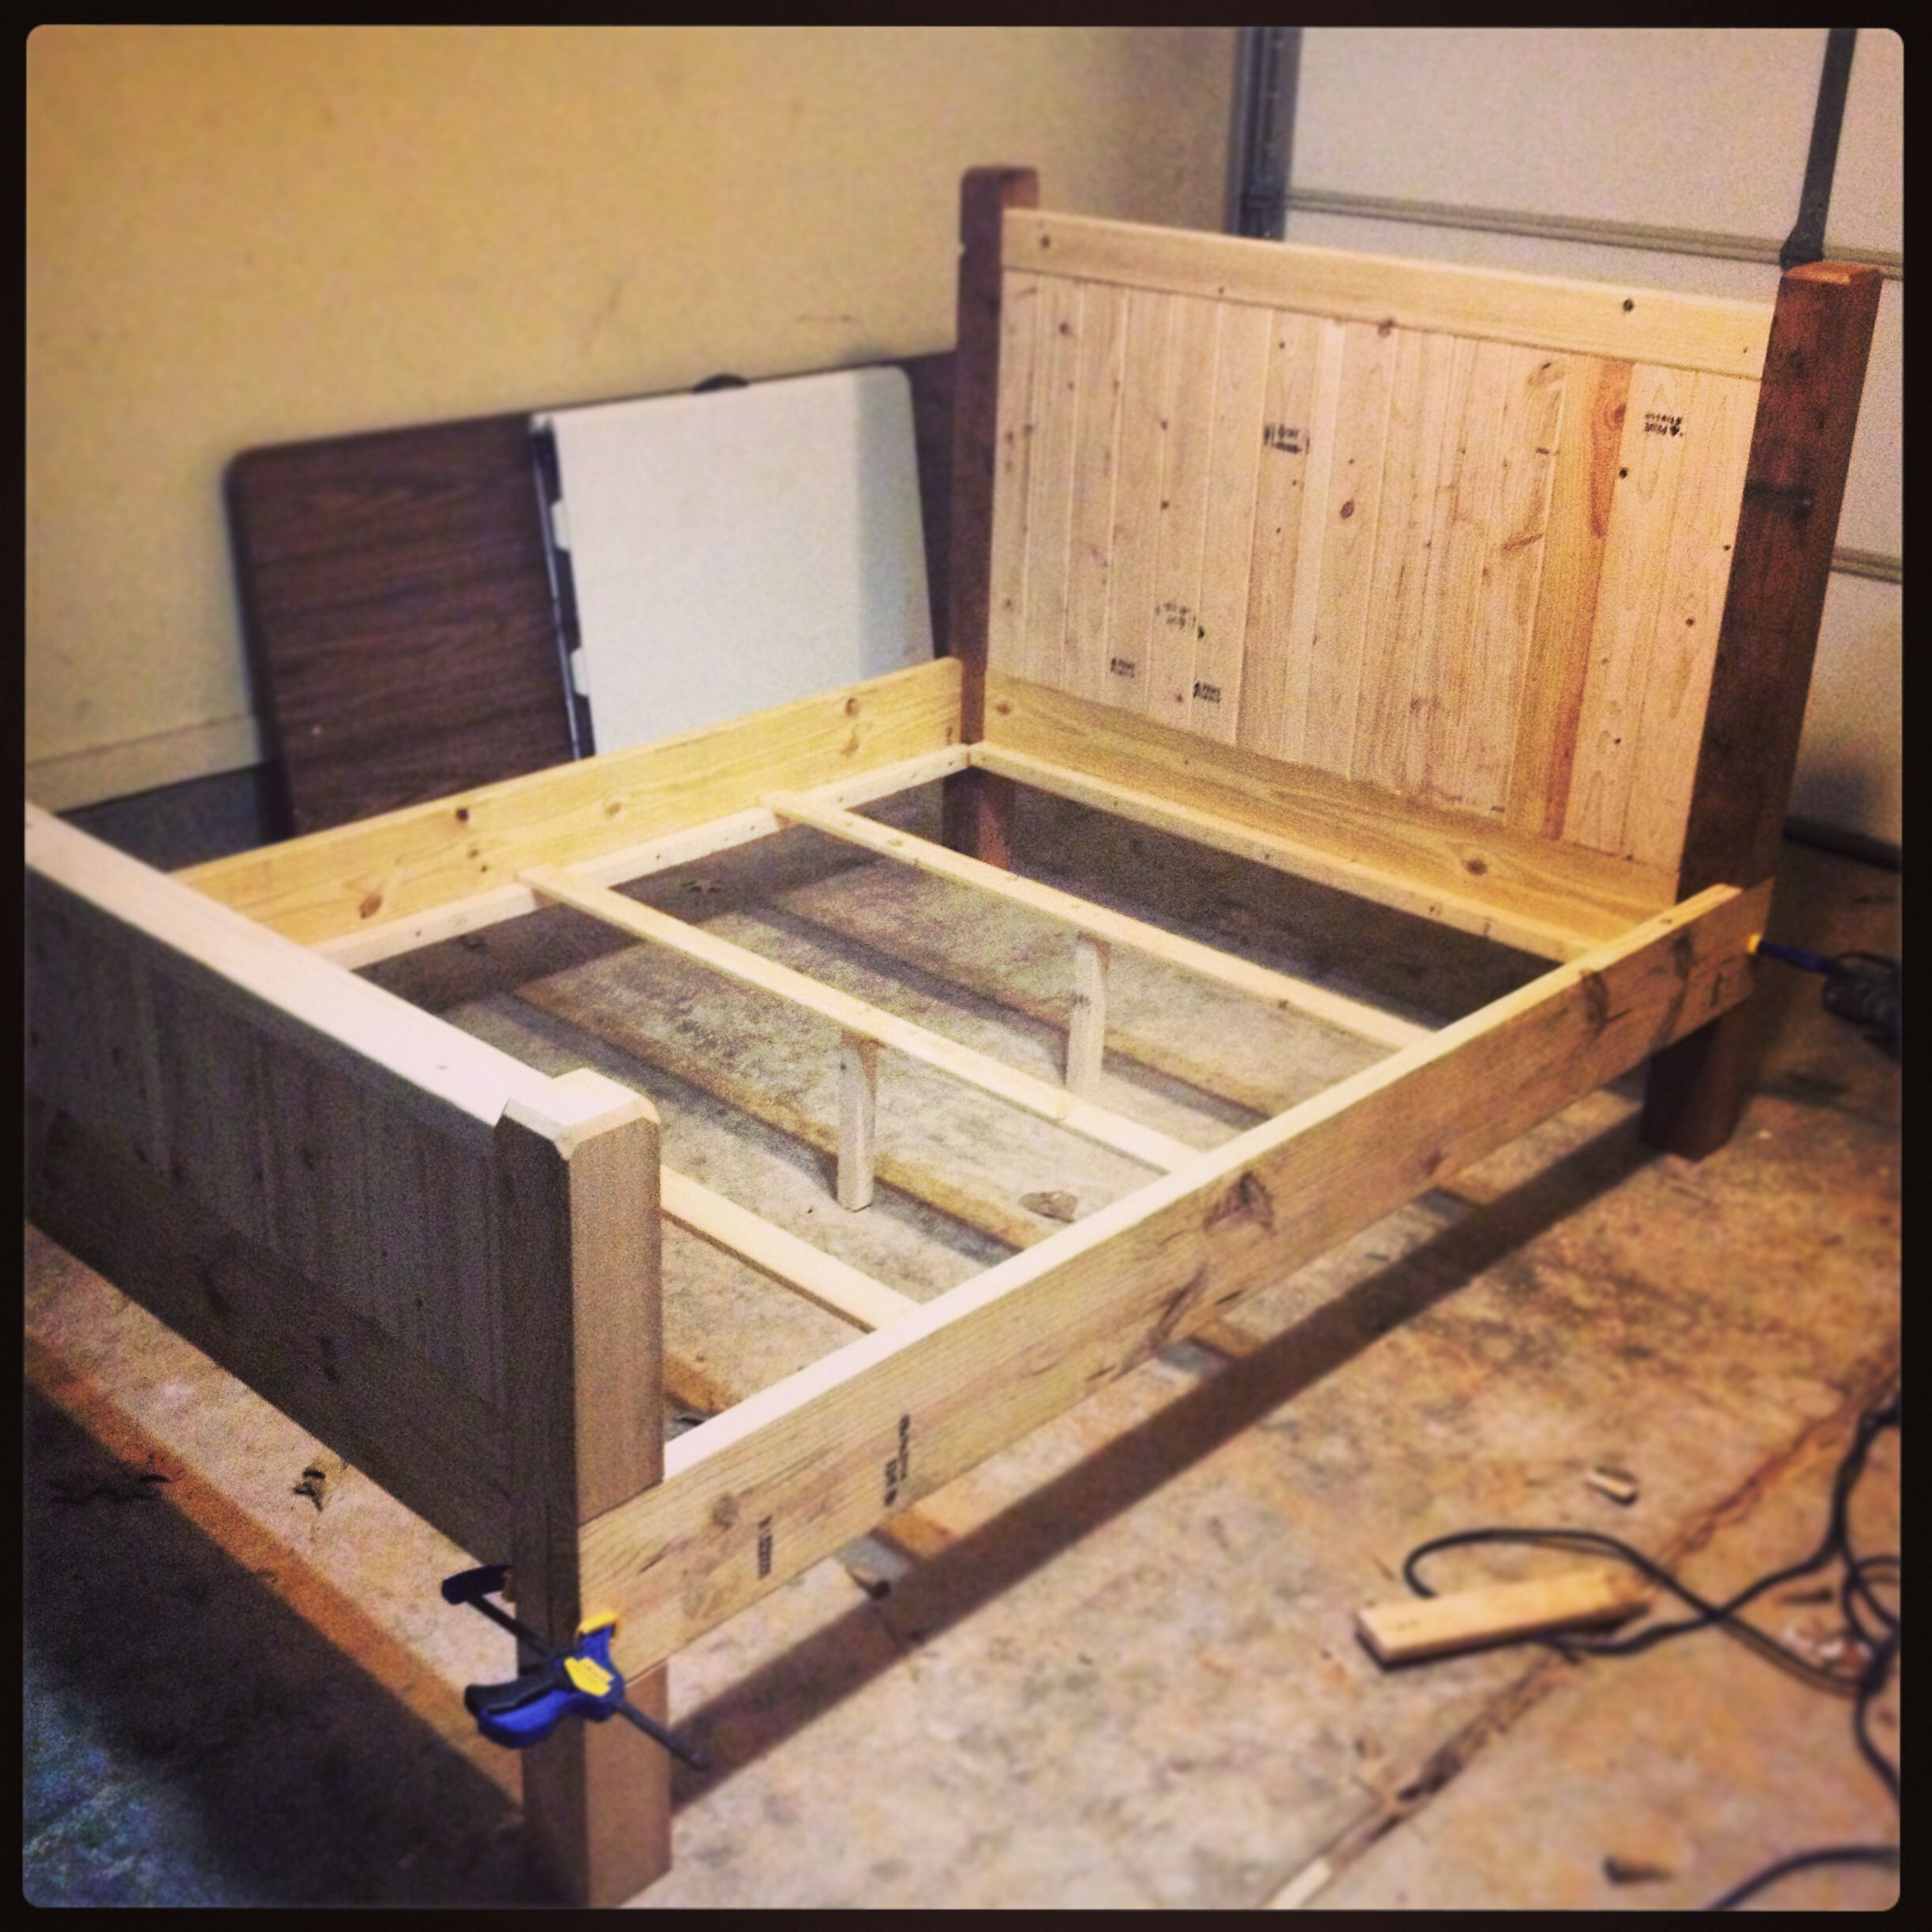 Diy wood bed frame plans - Find This Pin And More On 2x4 Diy Furniture Designs How To Build Full Size Bed